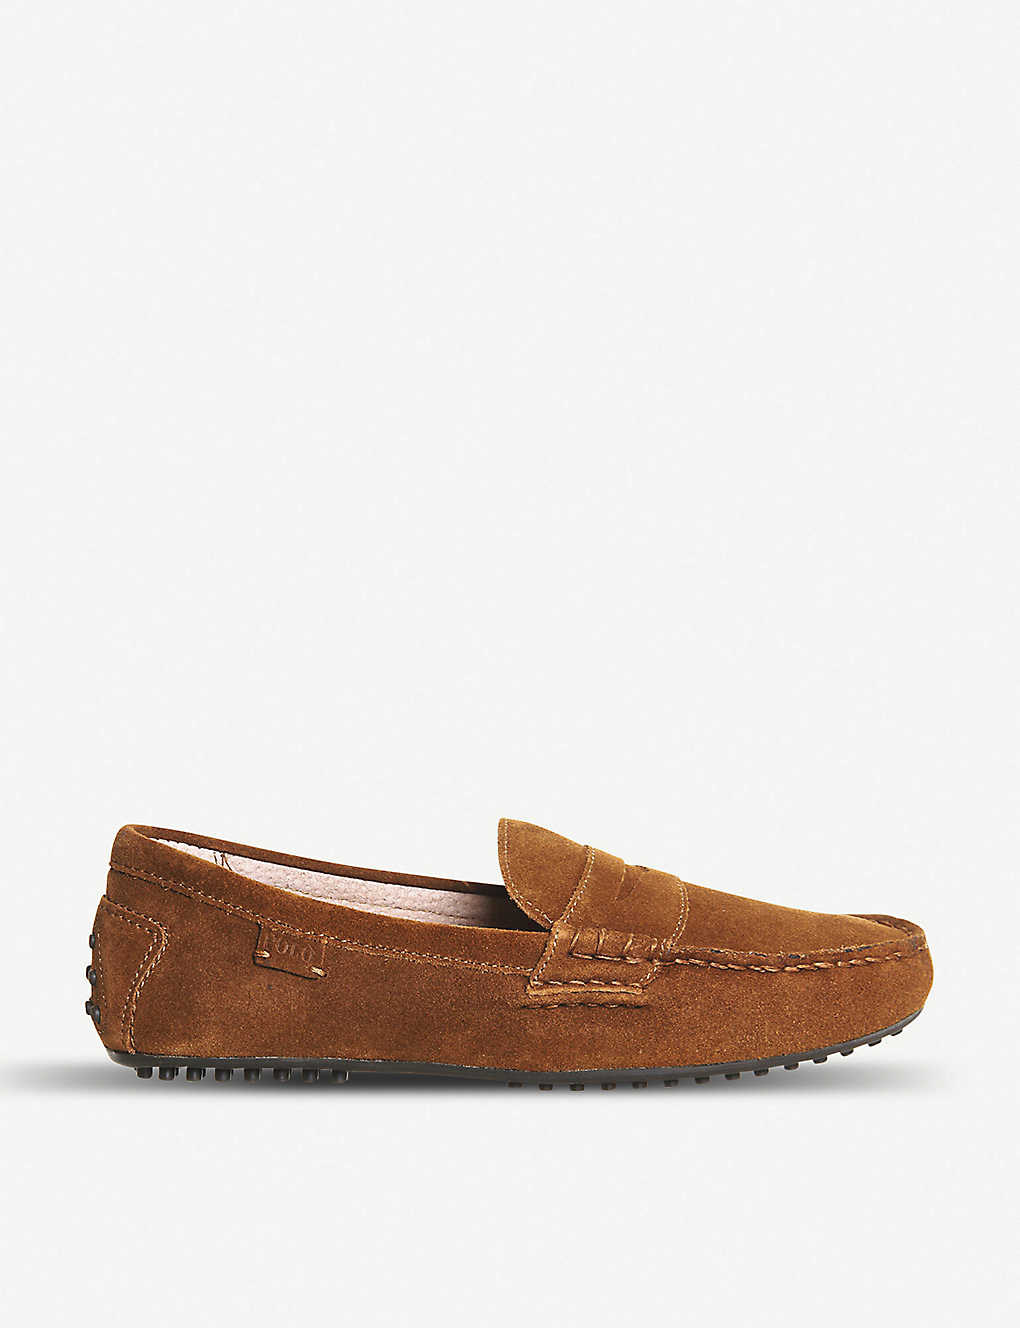 d743f3c7841 POLO RALPH LAUREN - Wes suede loafers